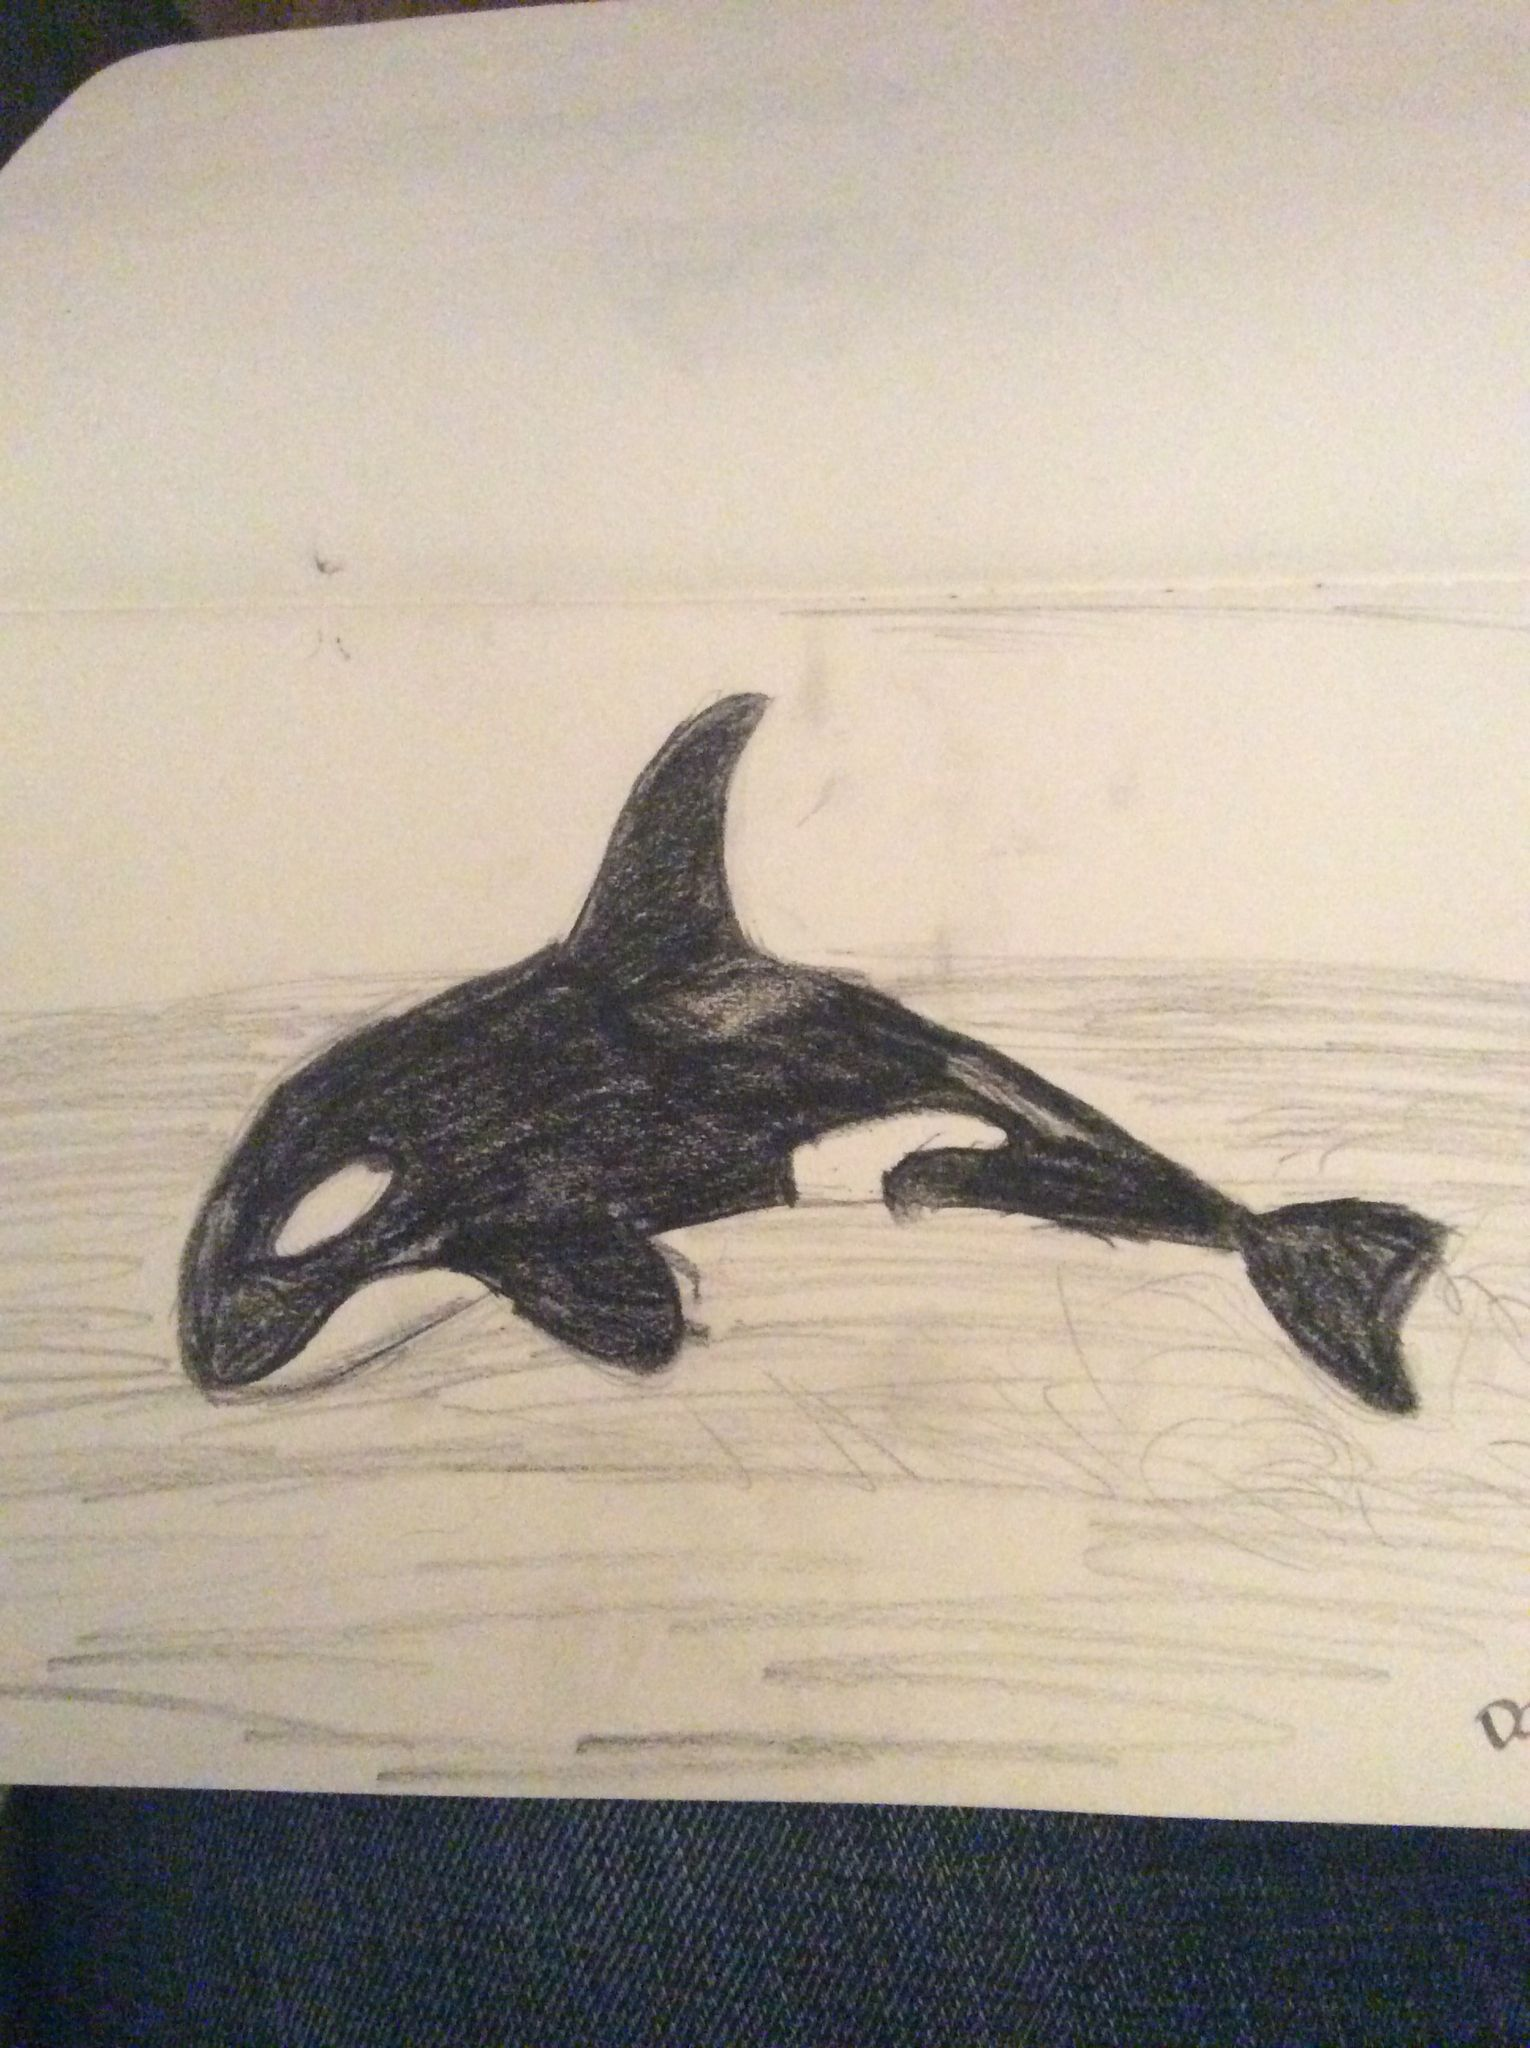 Day 70 a killer whale orca marine mammal pencil drawing